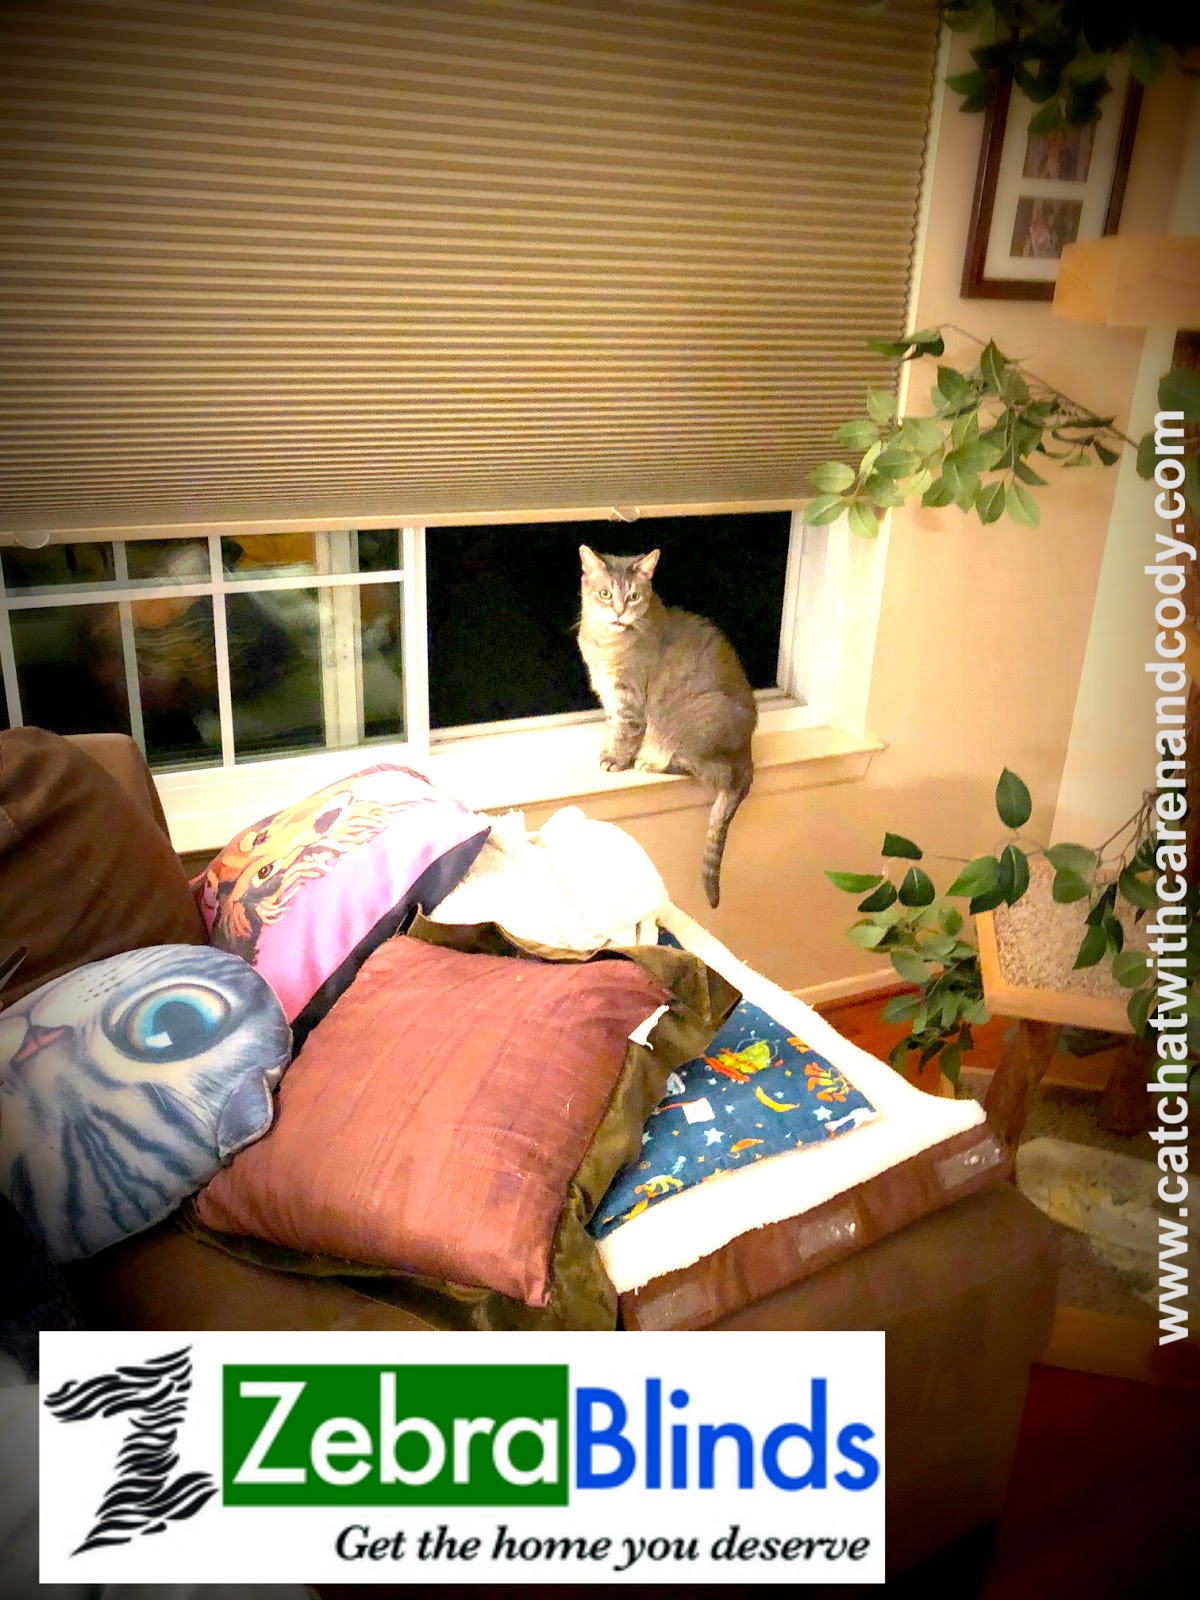 I Can T Tell You How Cringe When See Photos Of Cats Lounging In Windows With Improper Window Treatments By Am Speaking